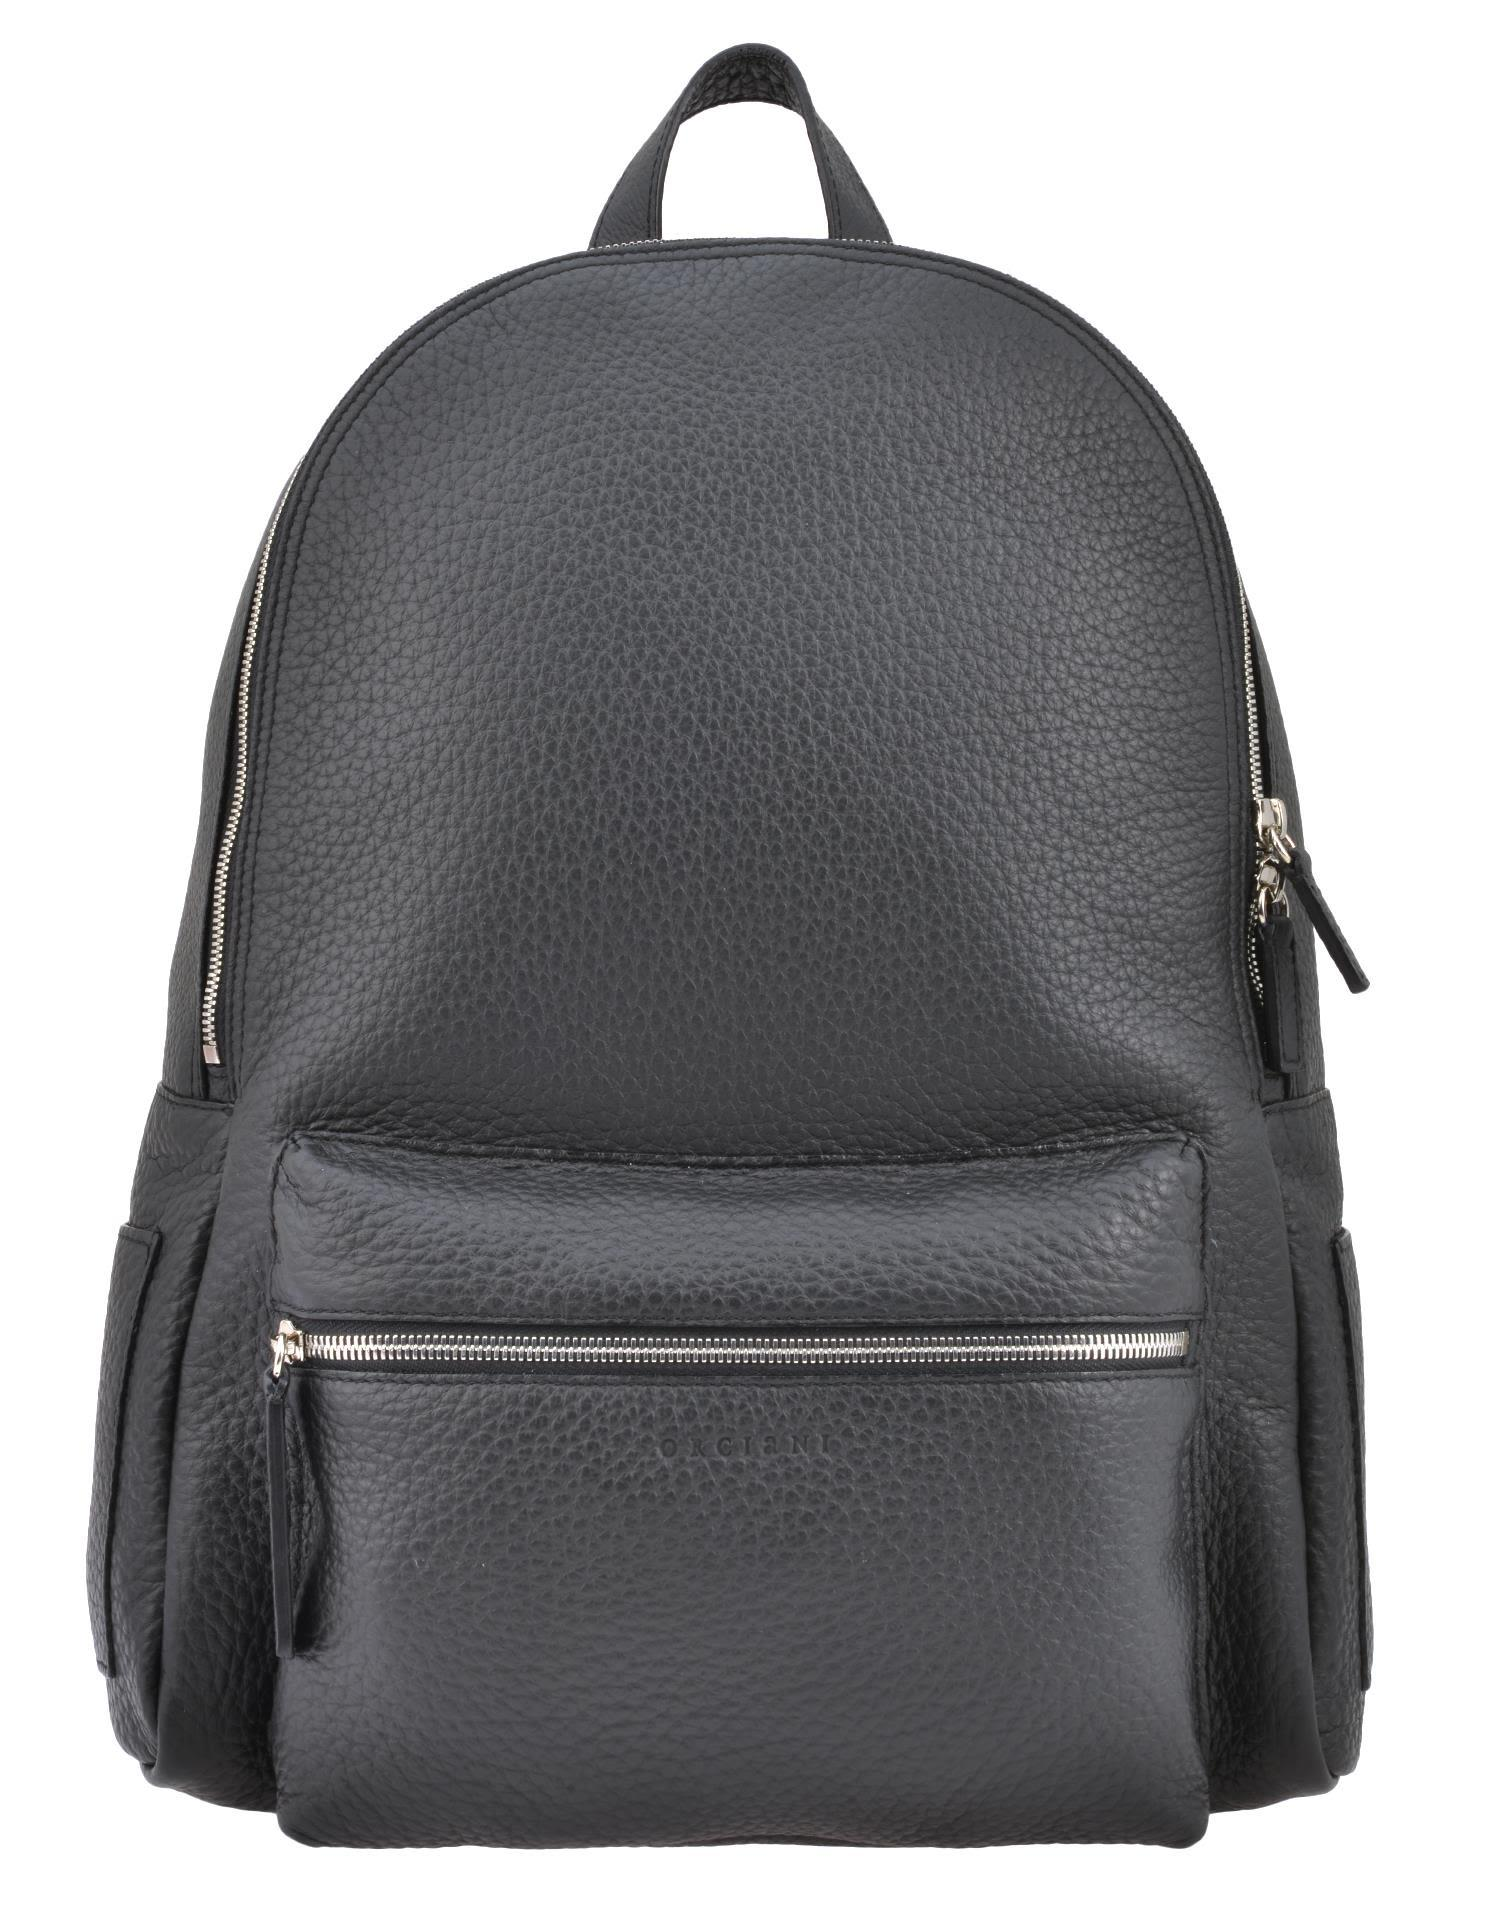 Orciani Leather Backpack In Black